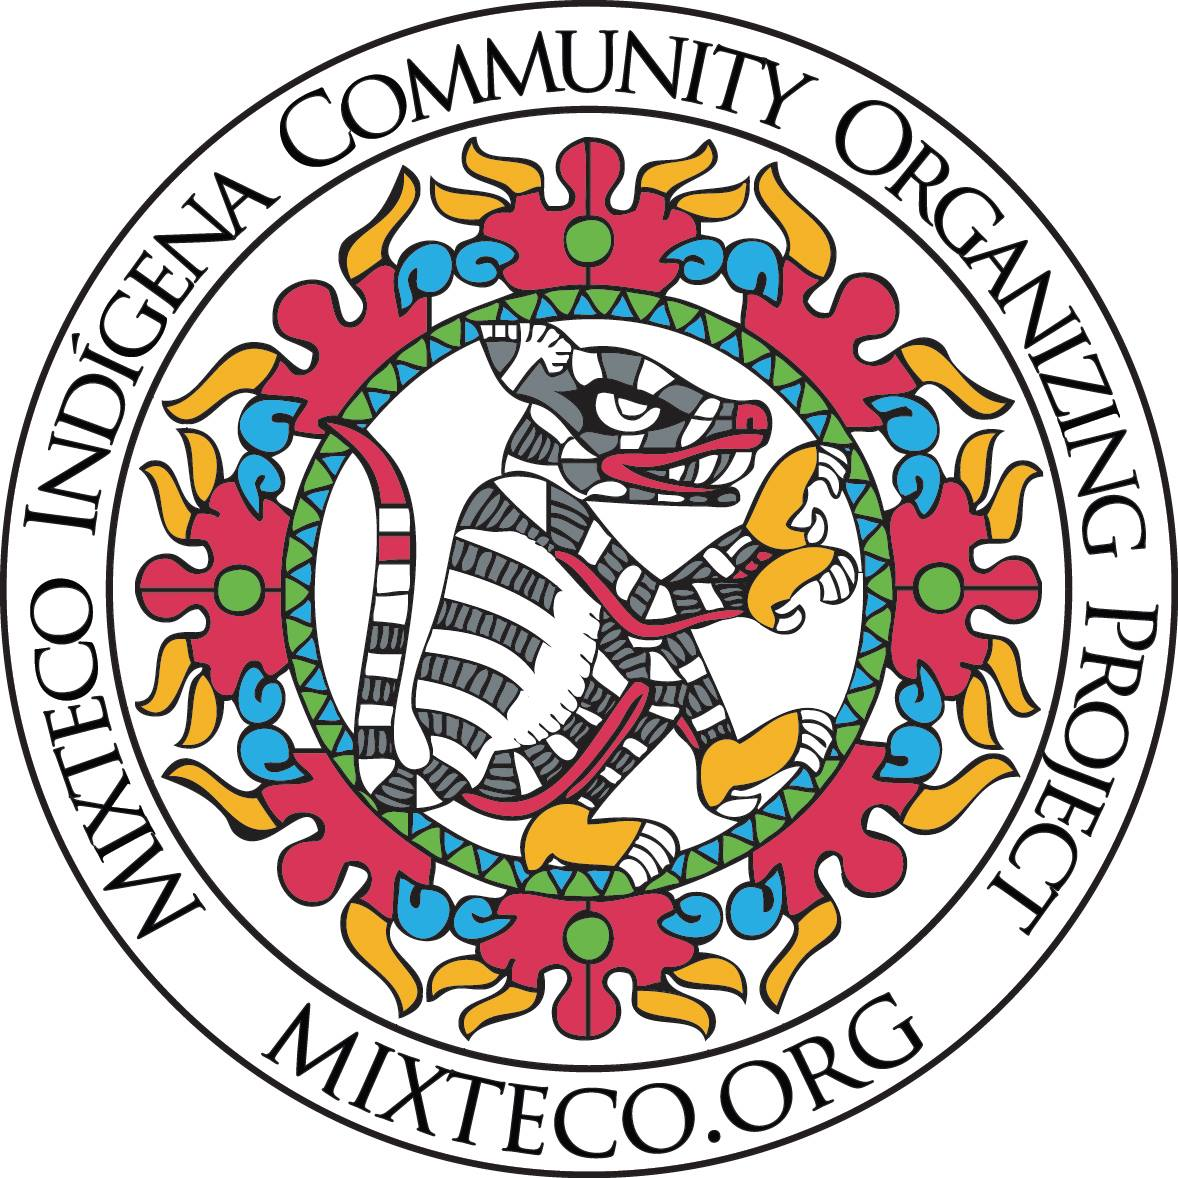 Mixteco/Indígena Community Organizing Project